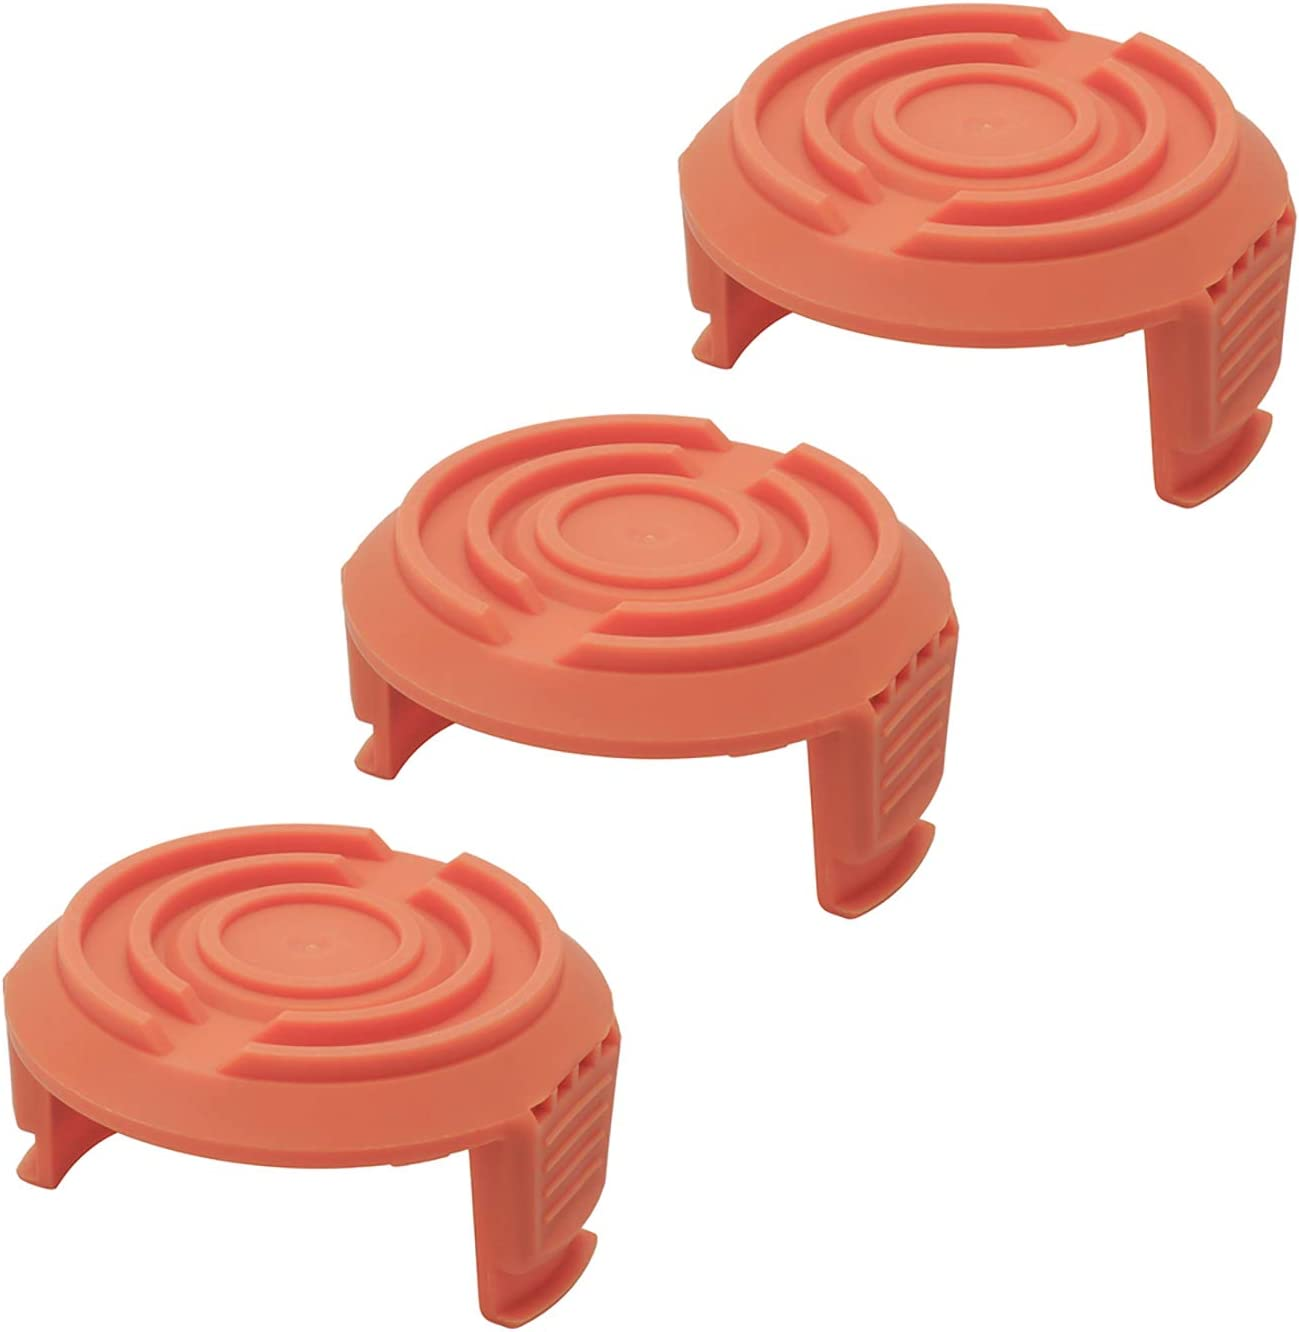 5x Strimmer Spool Head Base Cover Cap Fit For Worx GT Trimmer Replaces 50006531